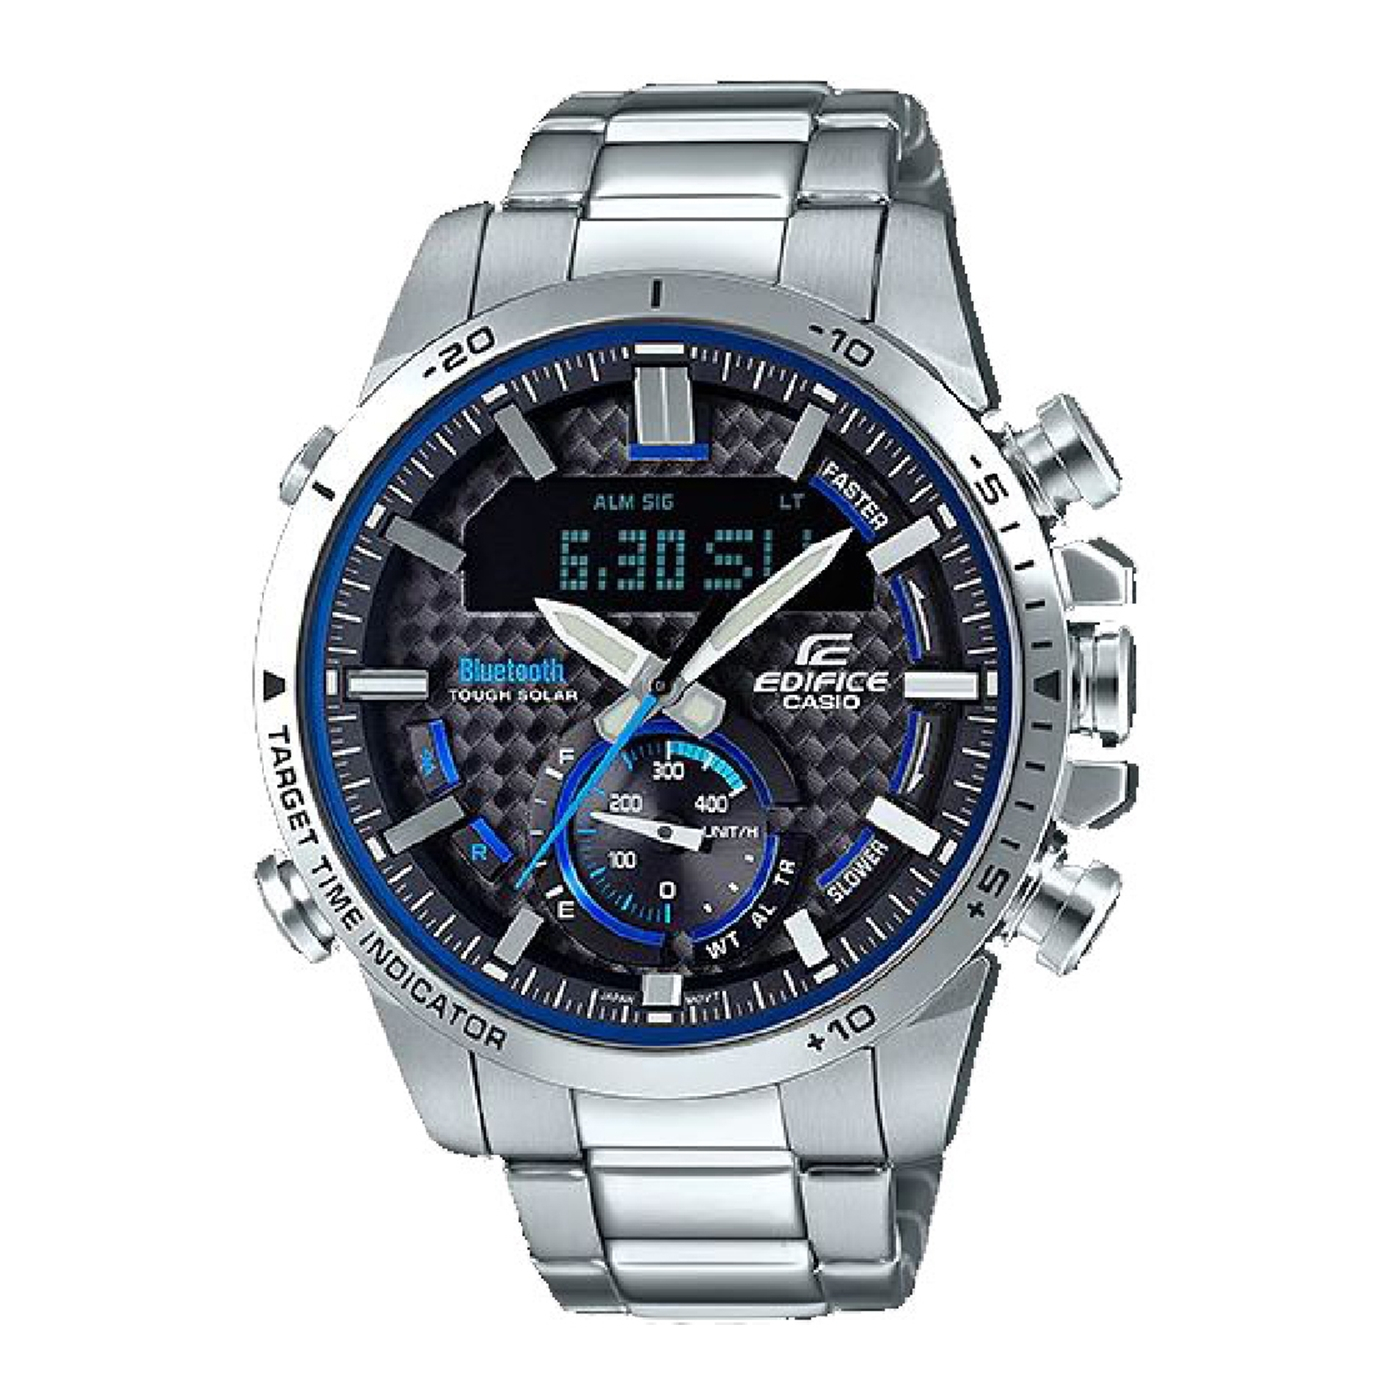 Afbeelding van Edifice Bluetooth Connected Race Chrono horloge ECB 800D 1AEF